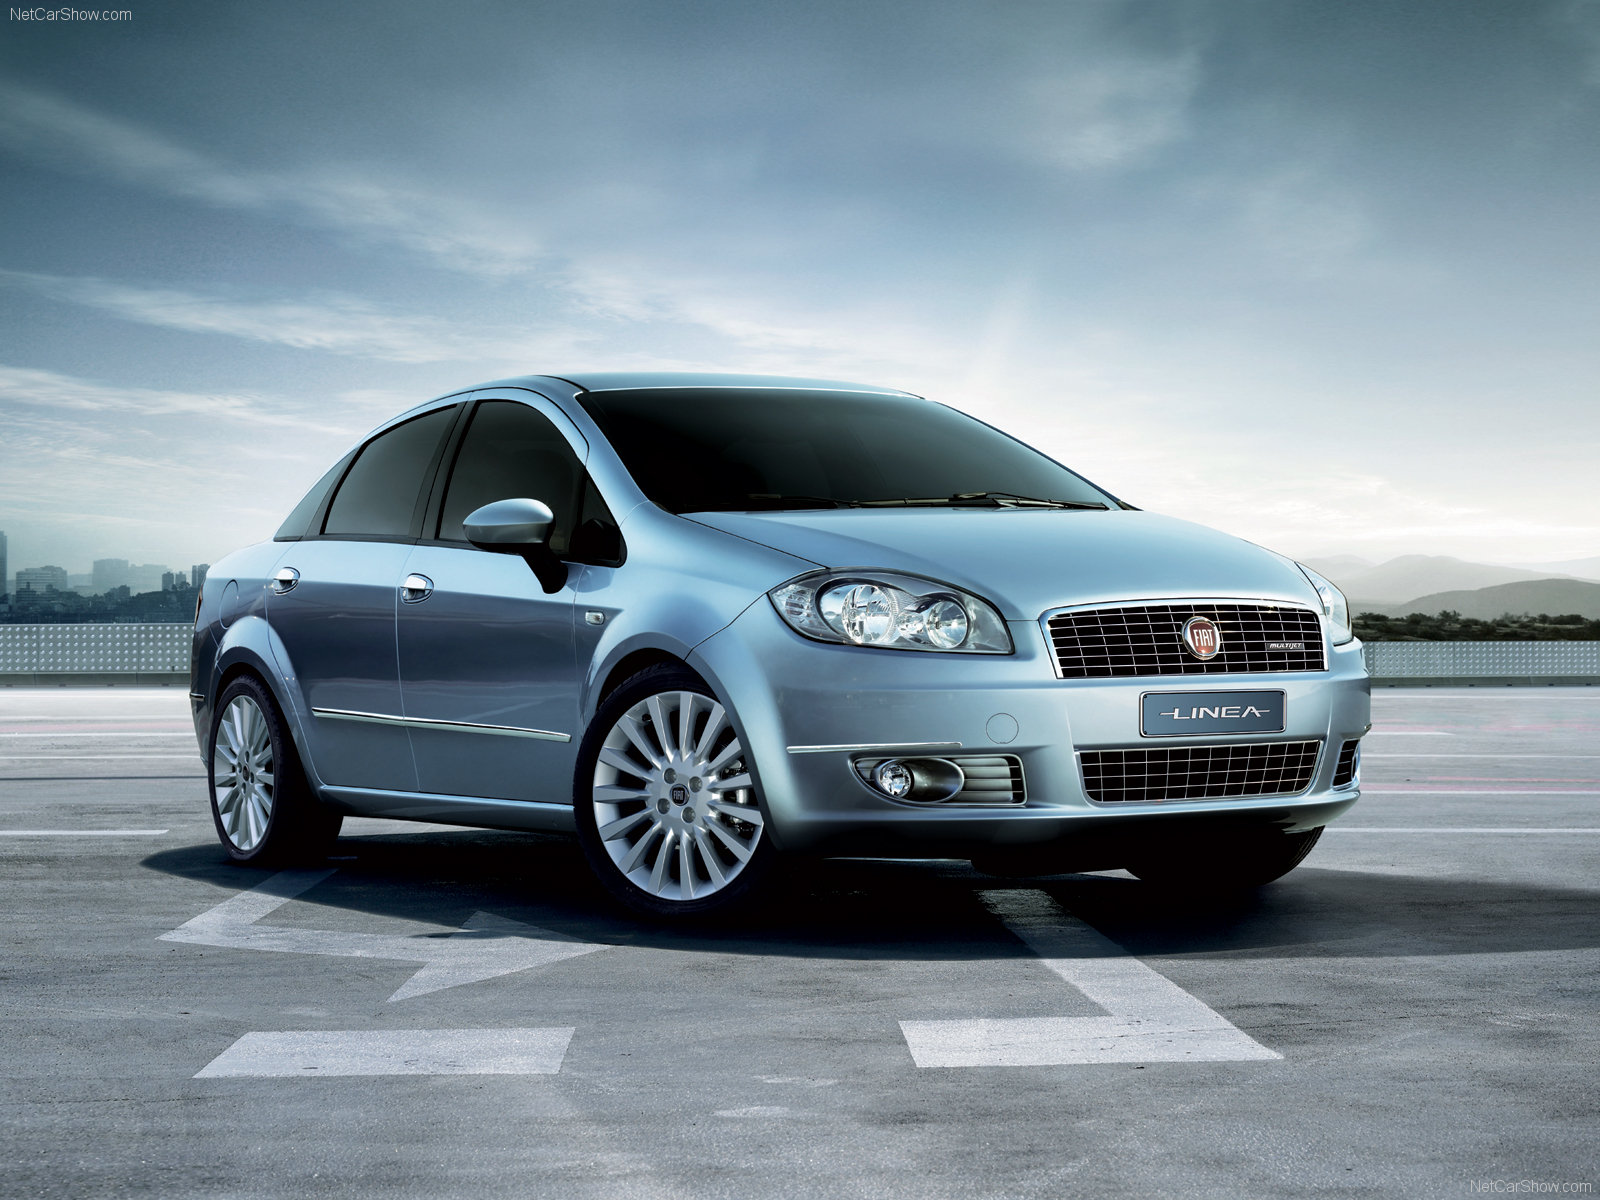 fiat linea wallpaper #12